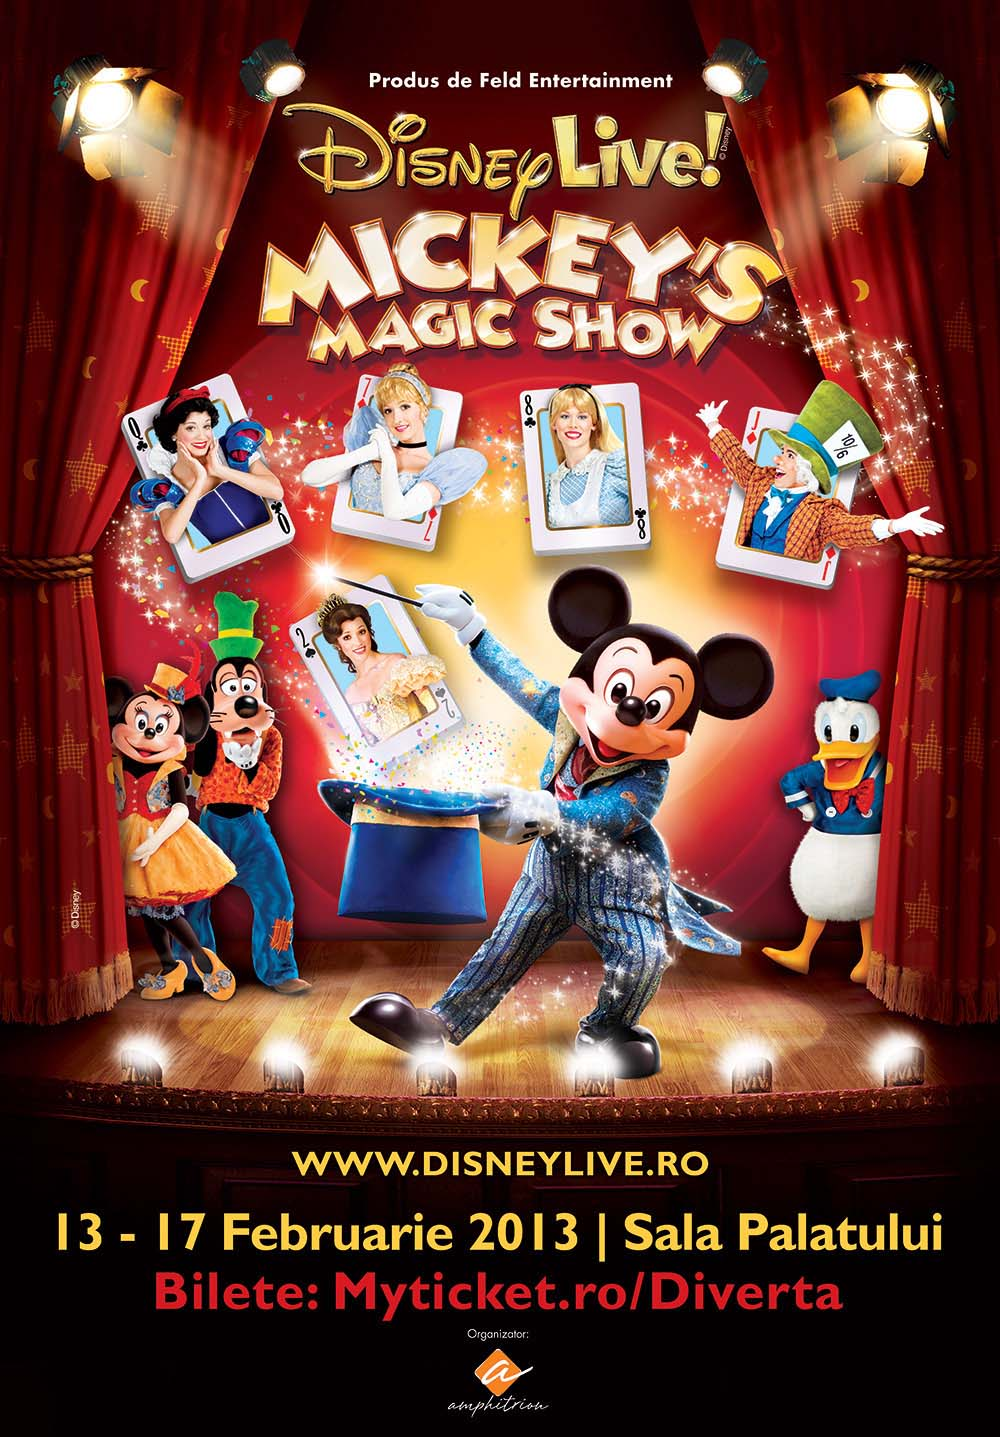 Disney Live! Mickey's Magic Show la Sala Palatului